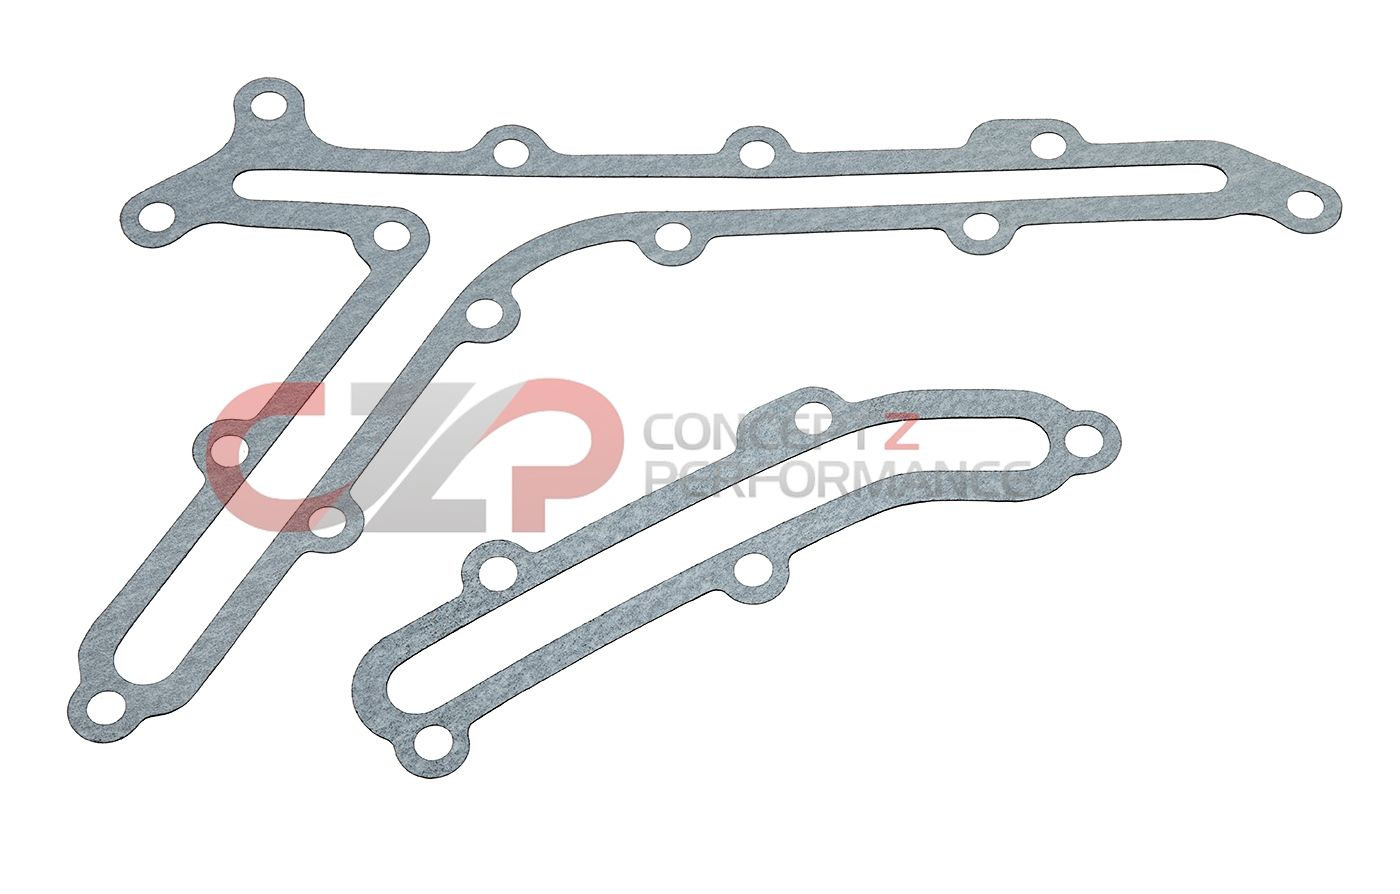 CZP Rear Timing Cover Oil Gallery Gasket Set, VQ35HR VQ37VHR - Nissan 350Z 370Z / Infiniti G35 G37 Q40 Q50 Q60 Q70 M37 FX35 FX37 QX70